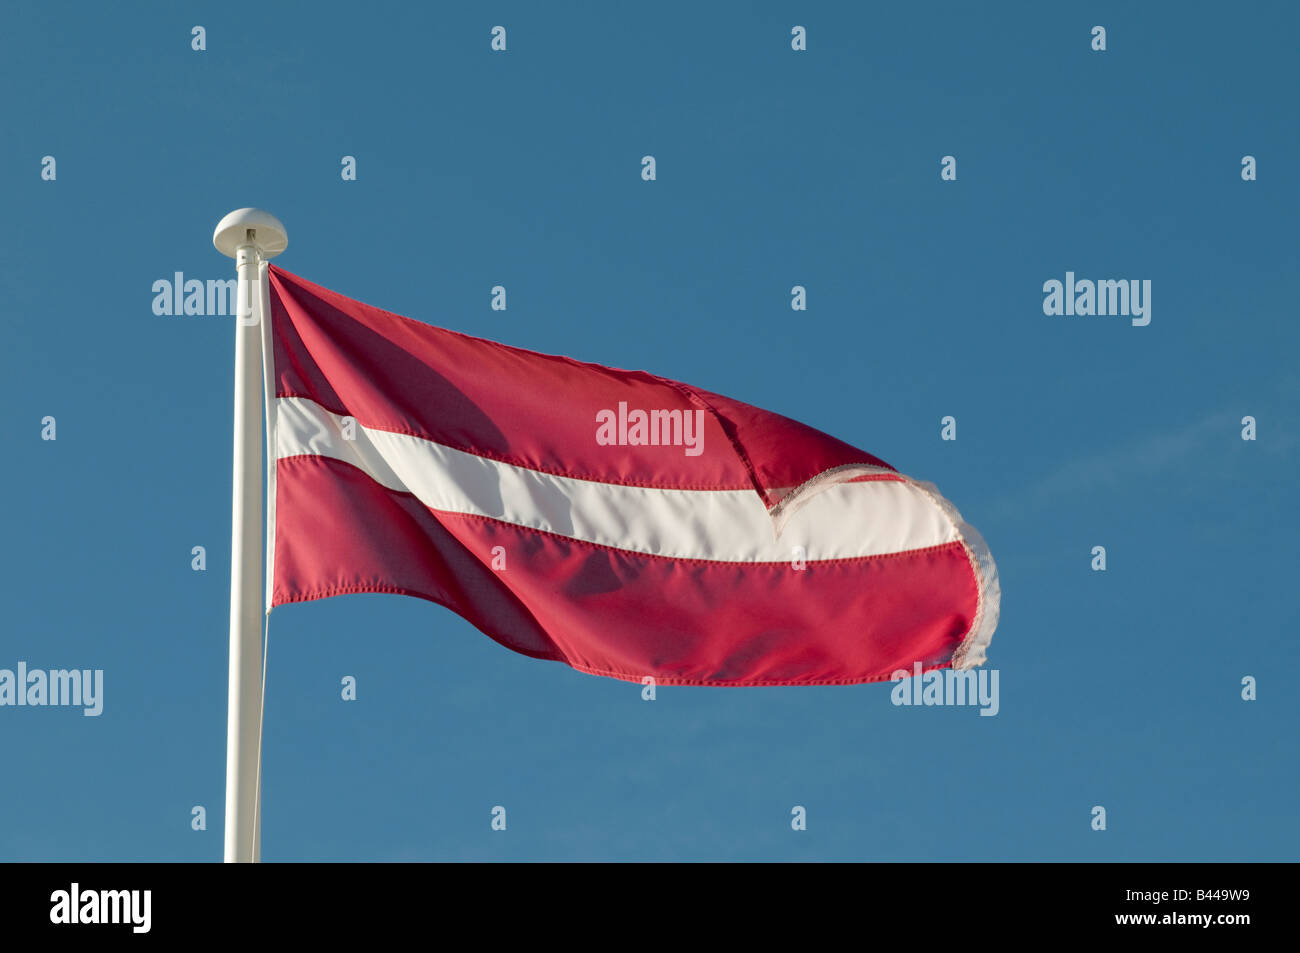 Latvian flag white stripe on red background against blue sky - Stock Image